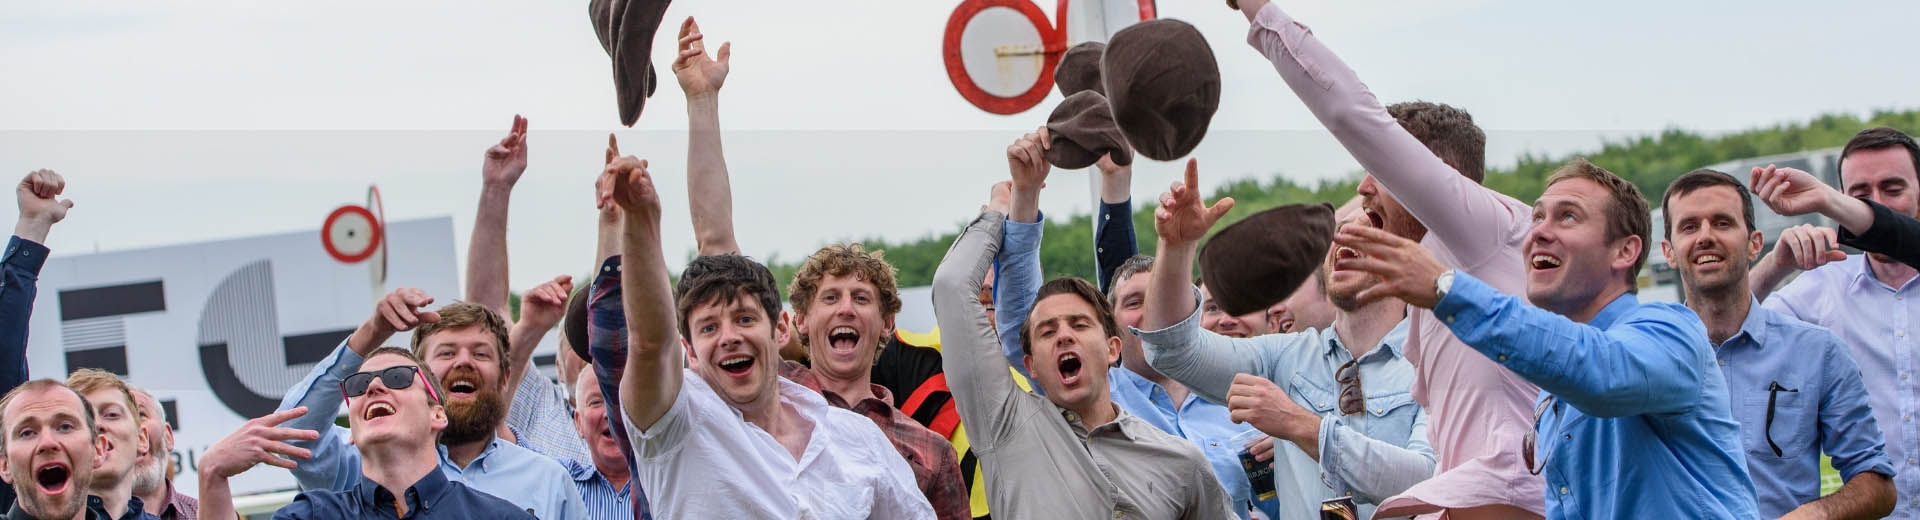 Musselburgh Lines Up £225,000 Easter Saturday Eggstravaganza